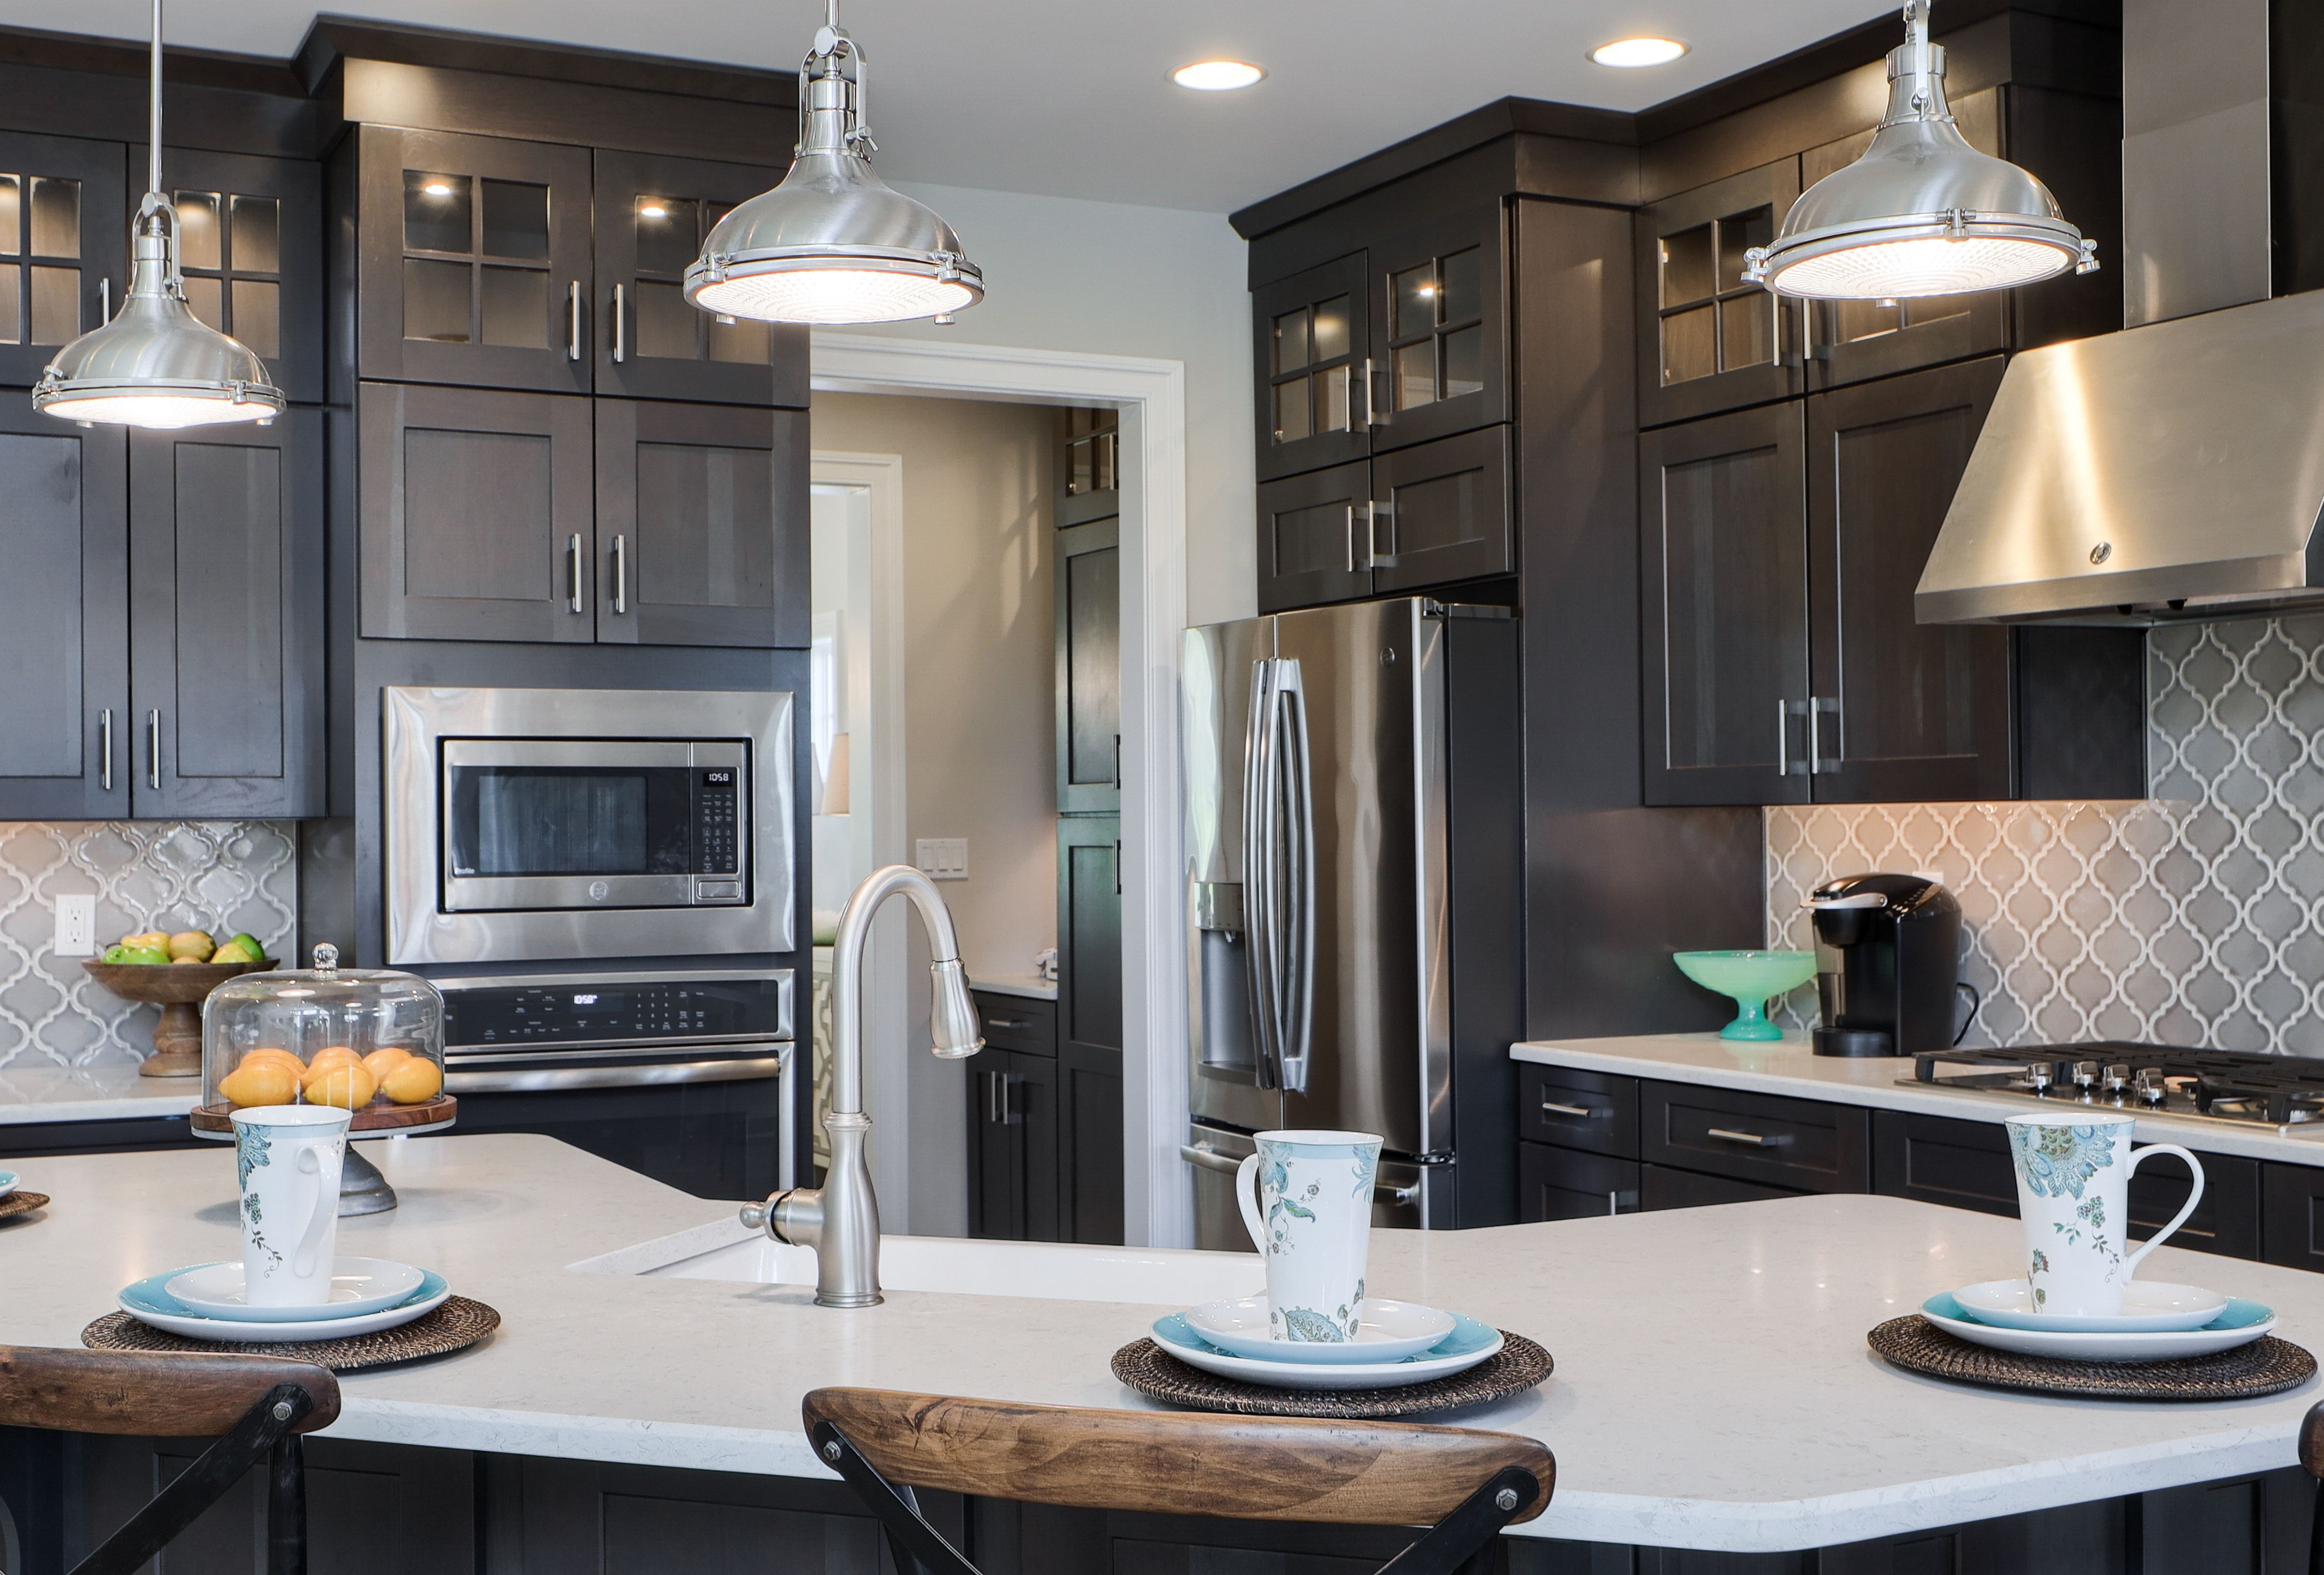 Kitchen featured in the Nottingham Traditional By Keystone Custom Homes in Baltimore, MD